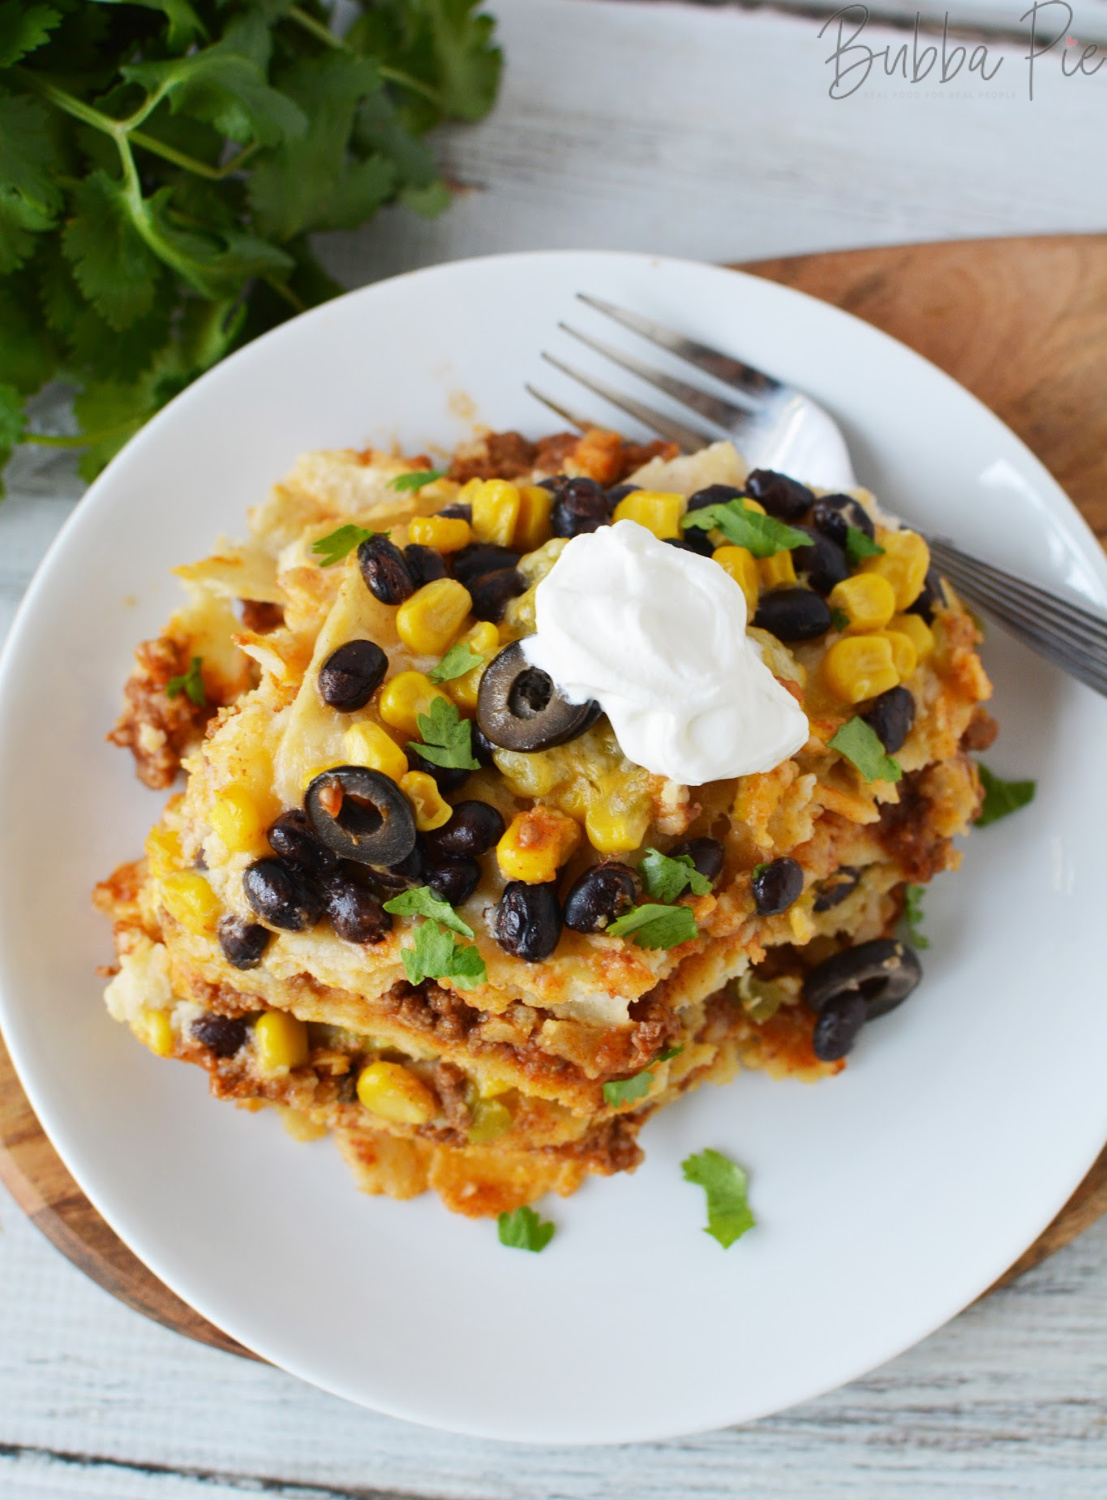 Crockpot Taco Casserole sitting on a table ready to serve for dinner